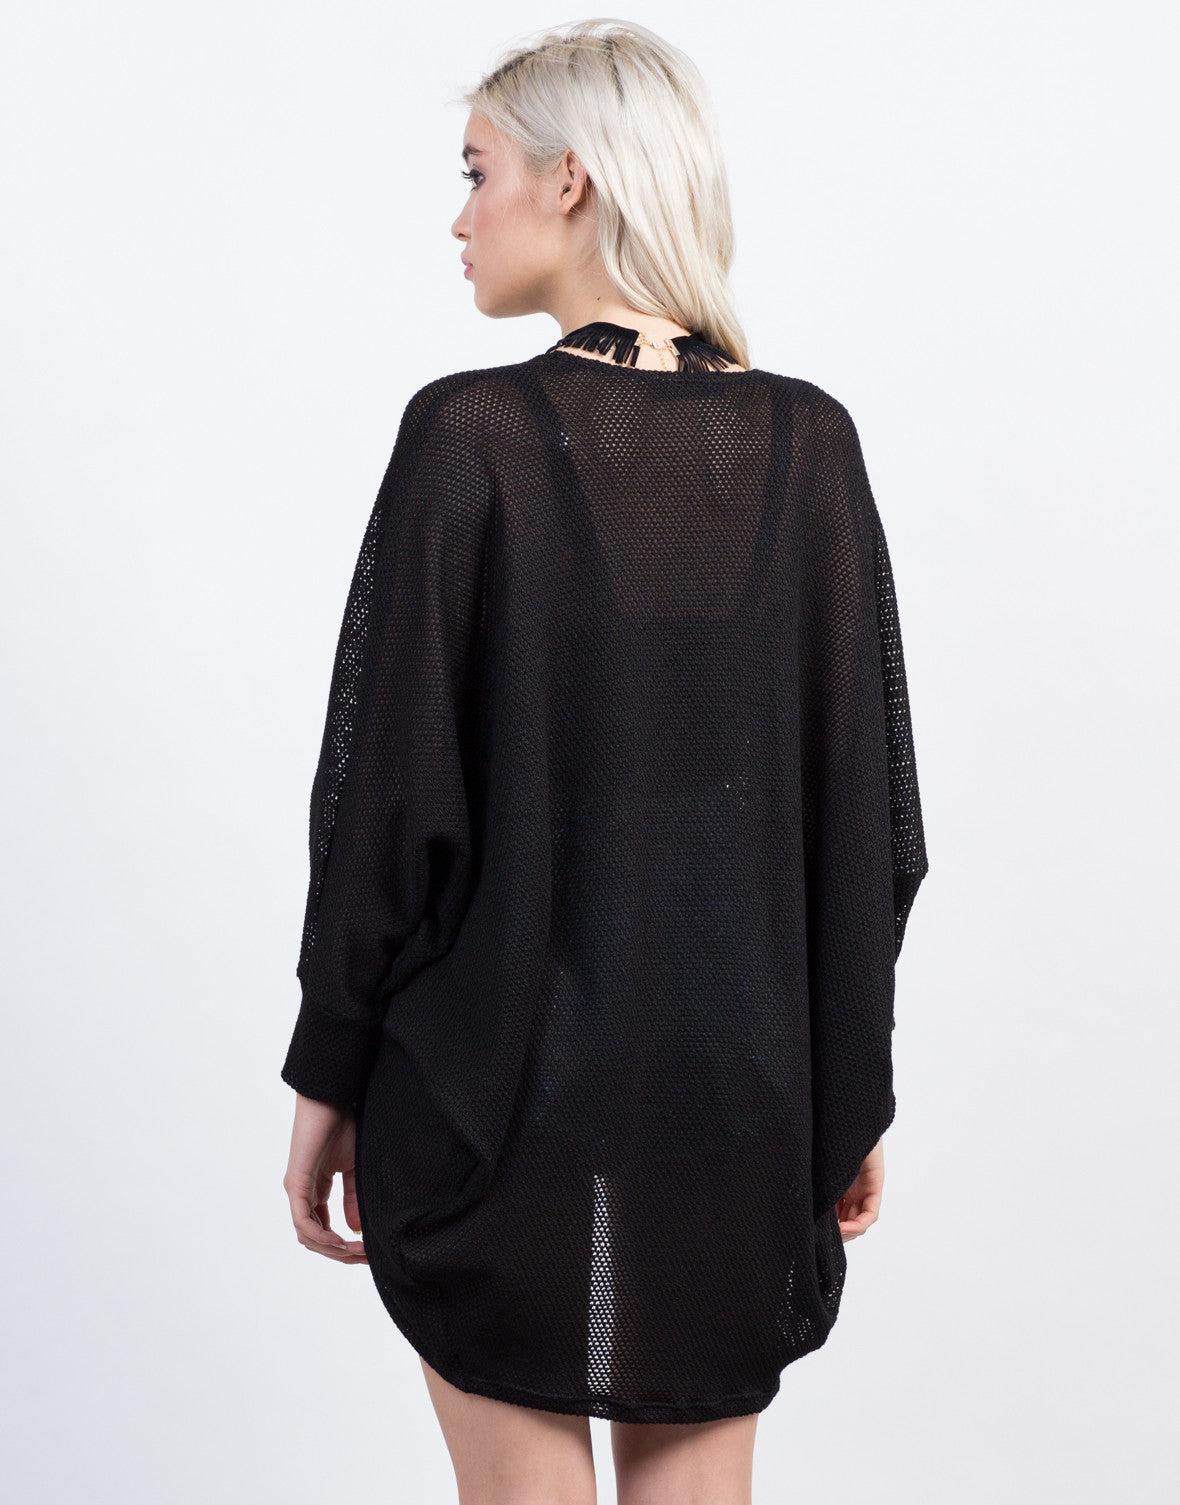 Back View of Netted Dolman Cardigan